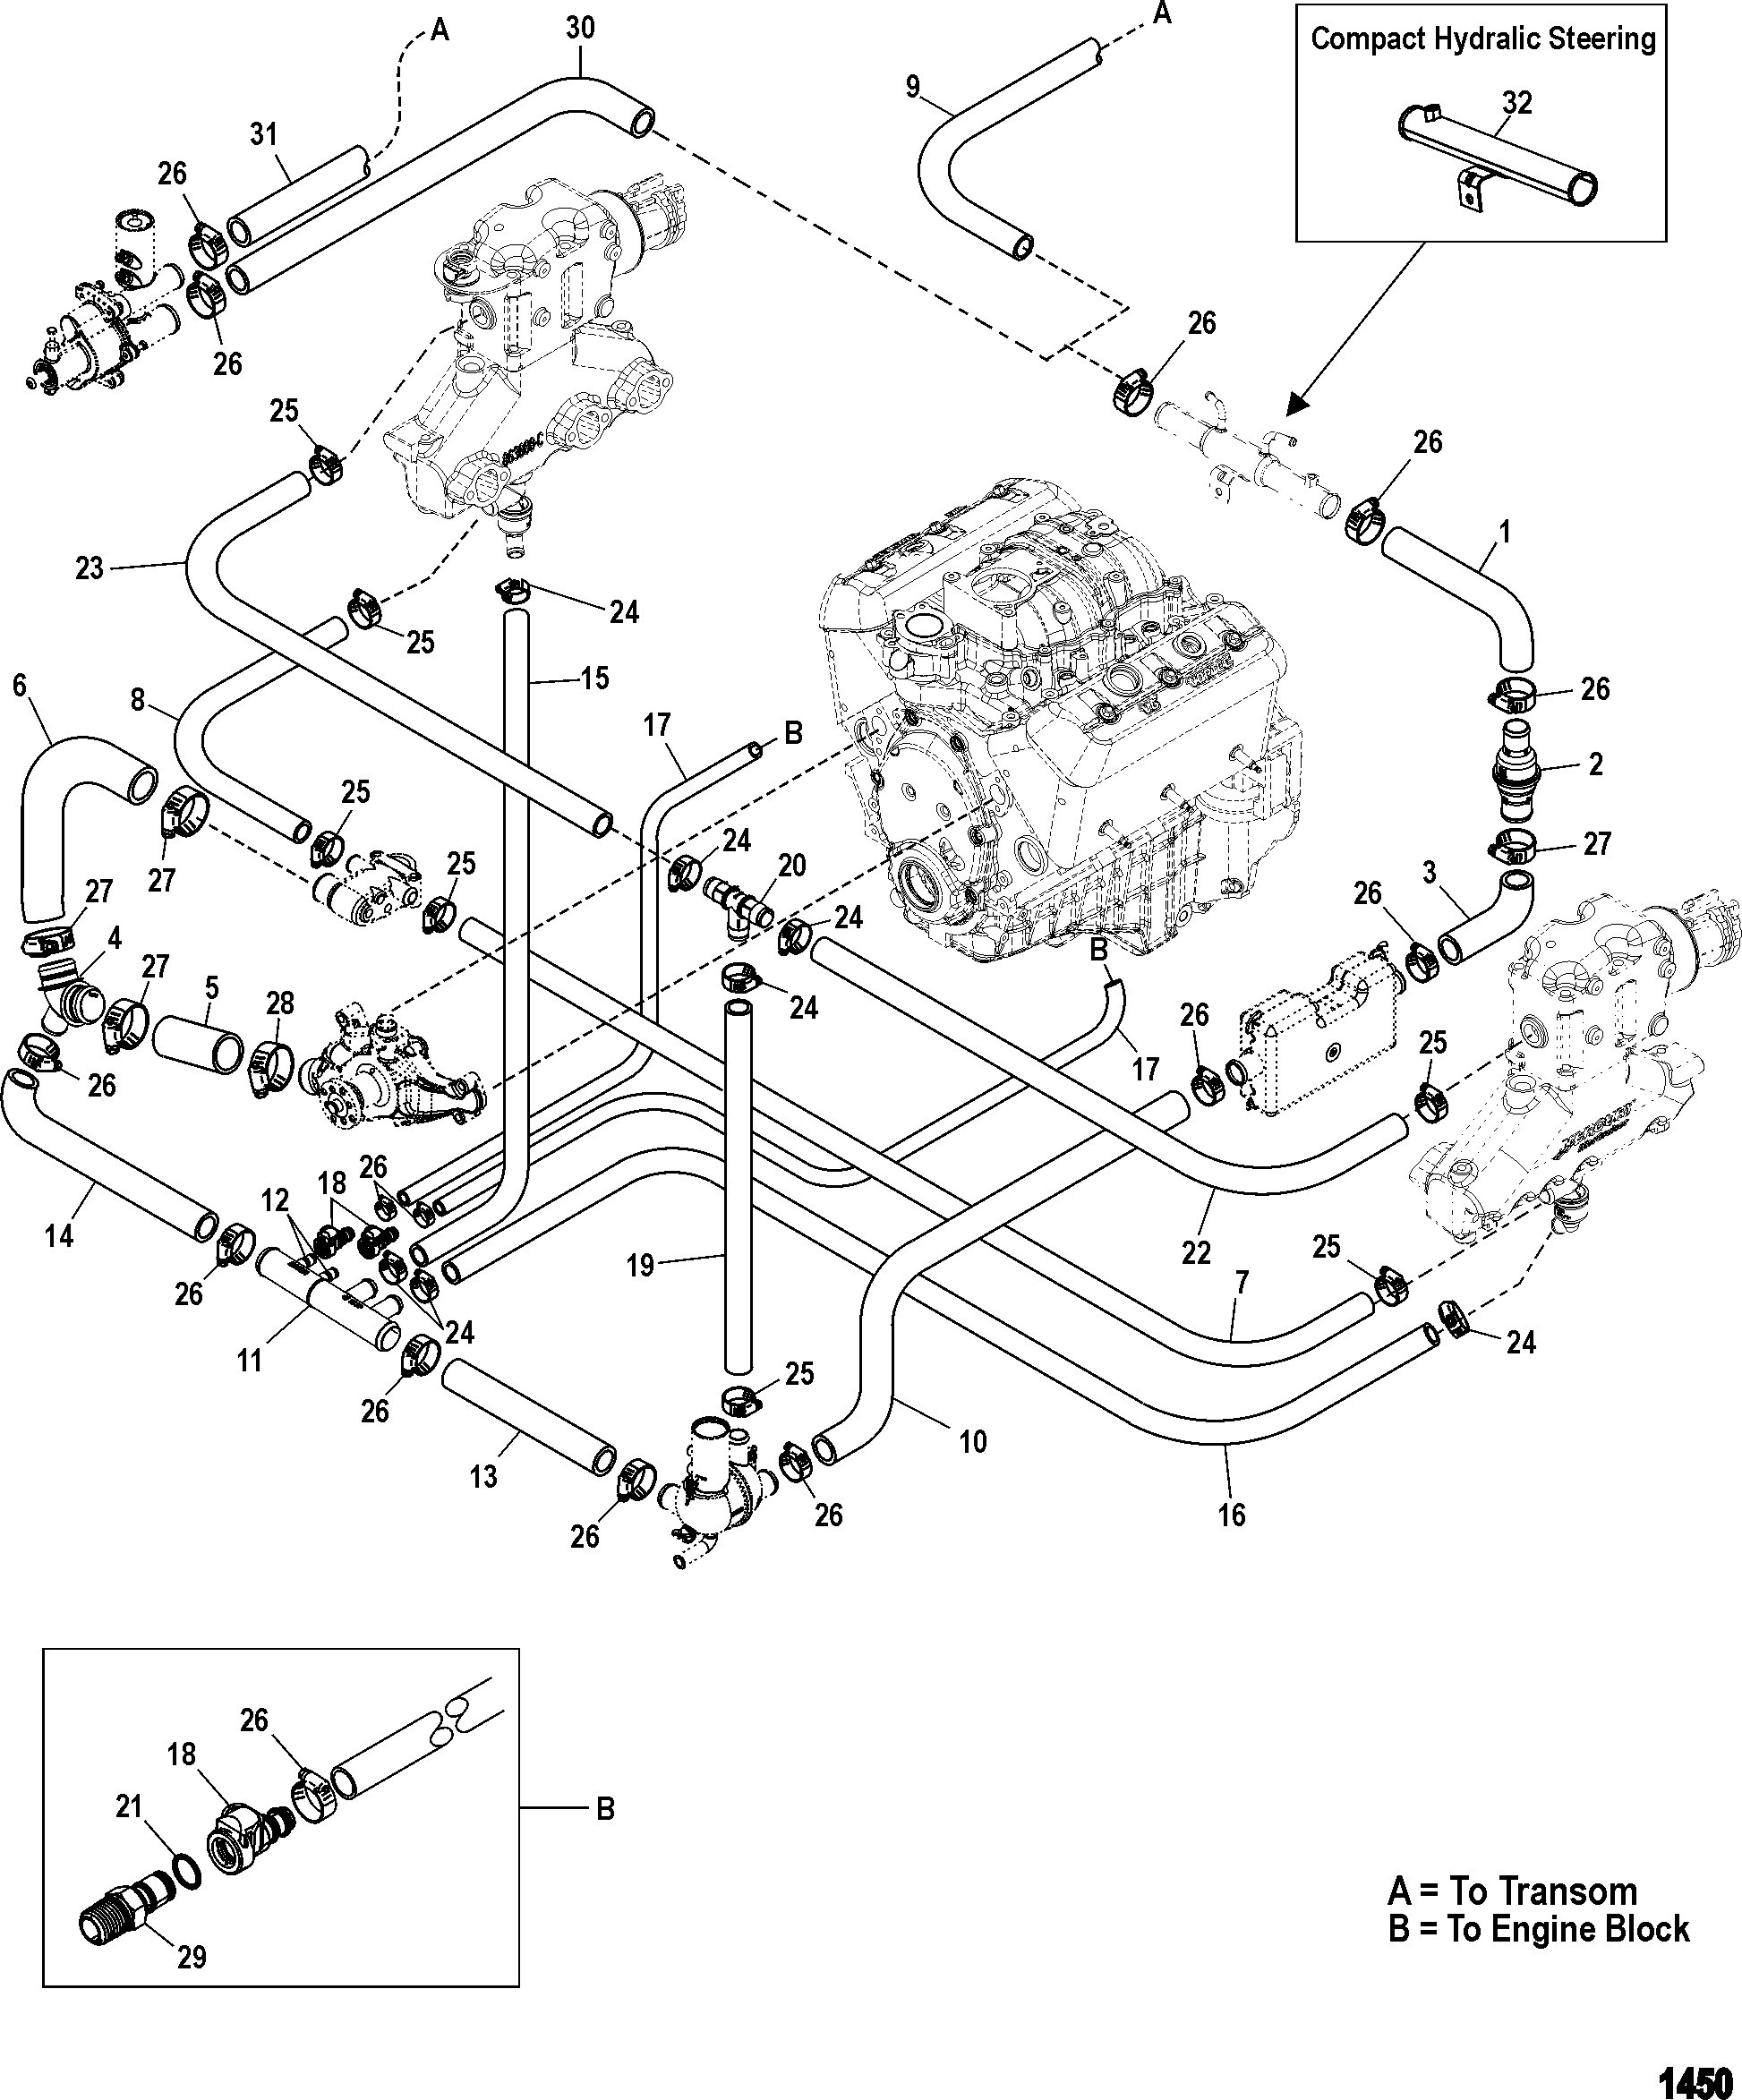 Spark Plug Wiring Diagram Chevy 4 3 V6